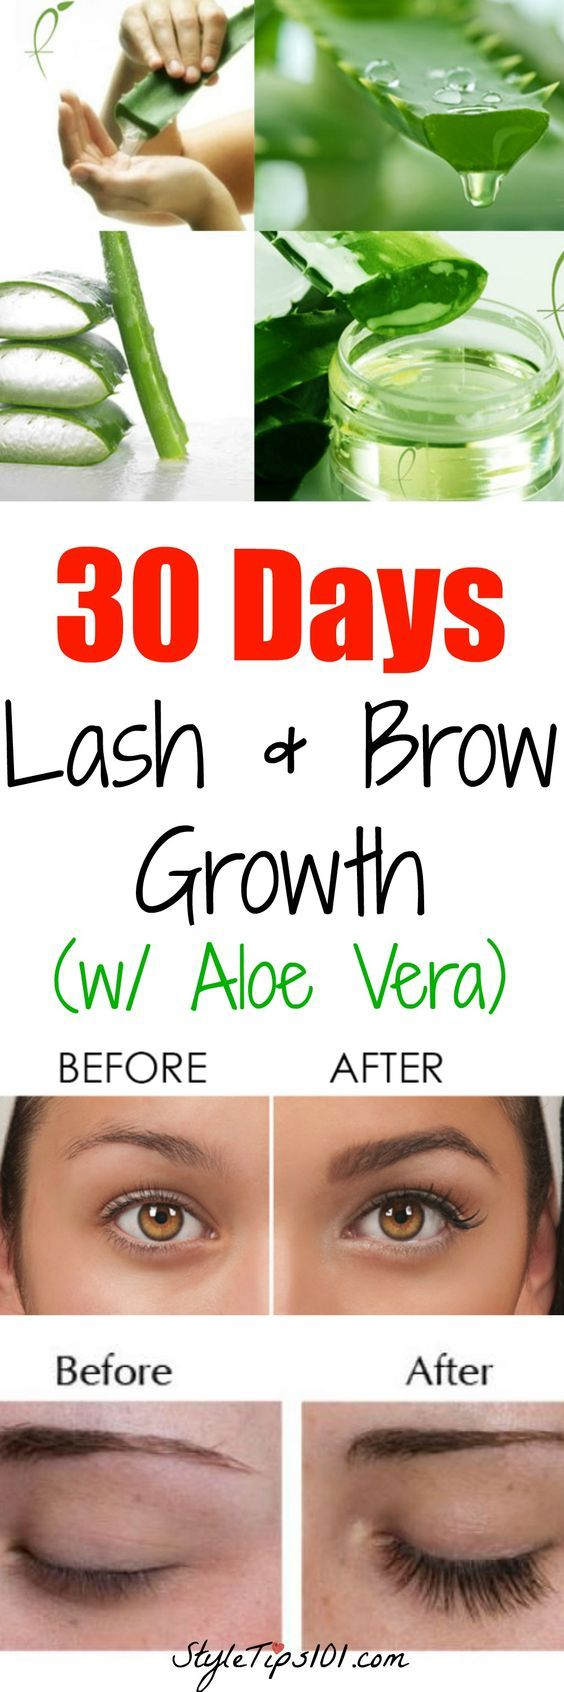 Aloe Vera Gel for Hair Growth http://ultrahairsolution.com/how-to-grow-natural-hair-fast-and-healthy/home-remedies-for-hair-growth-and-thickness/vitamin-for-fast-hair-growth/